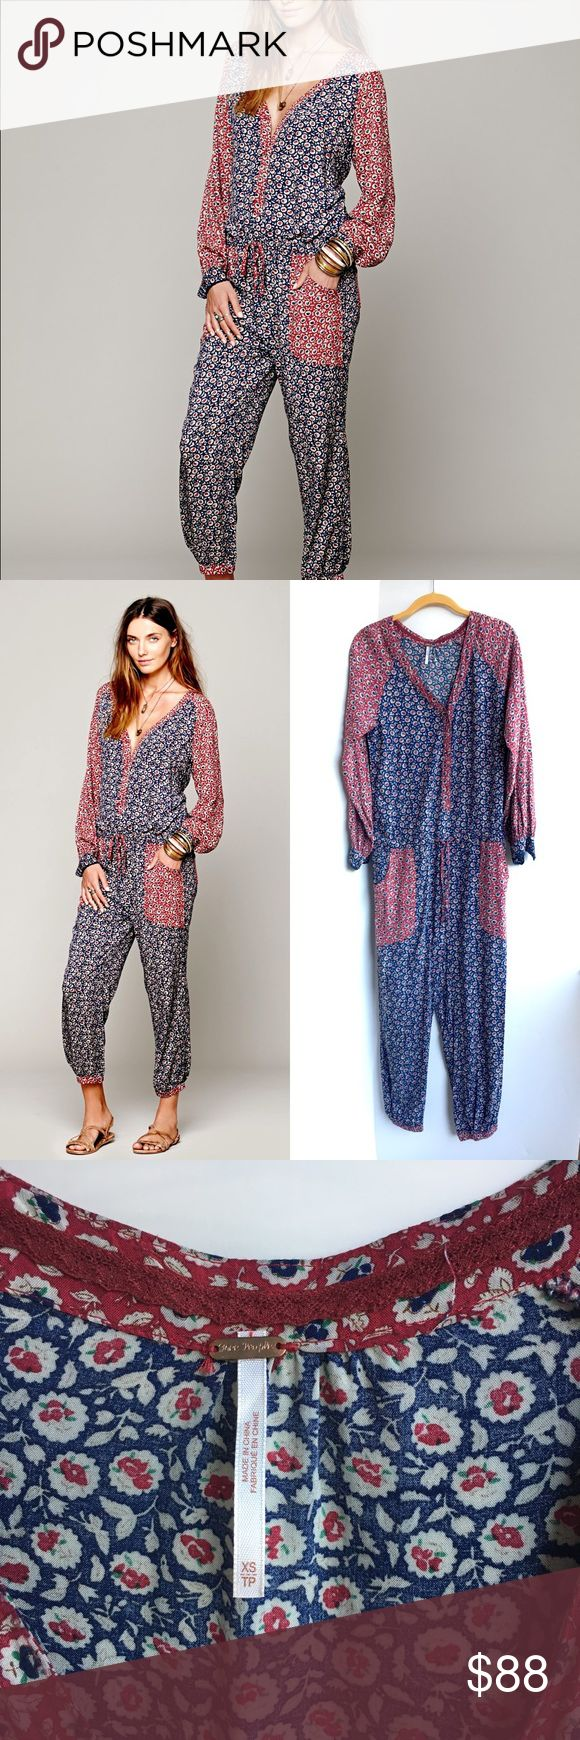 Free People Leia Floral festival jumpsuit XS Free People Leia Floral festival jumpsuit XS. Buttons up the front and has a drawstring waist. So cute! :) Free People Other